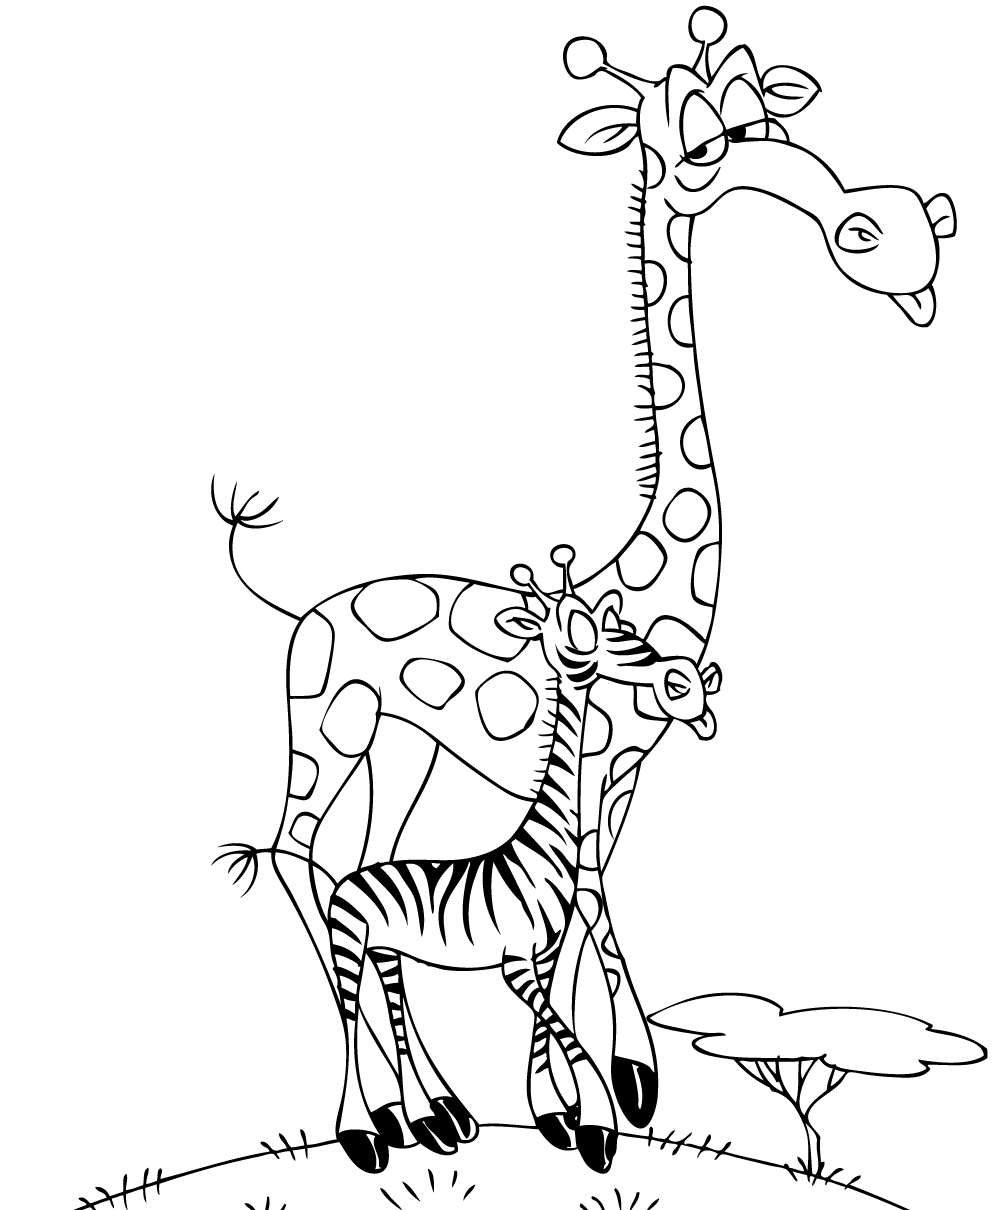 Giraffe And Zebra Coloring Page